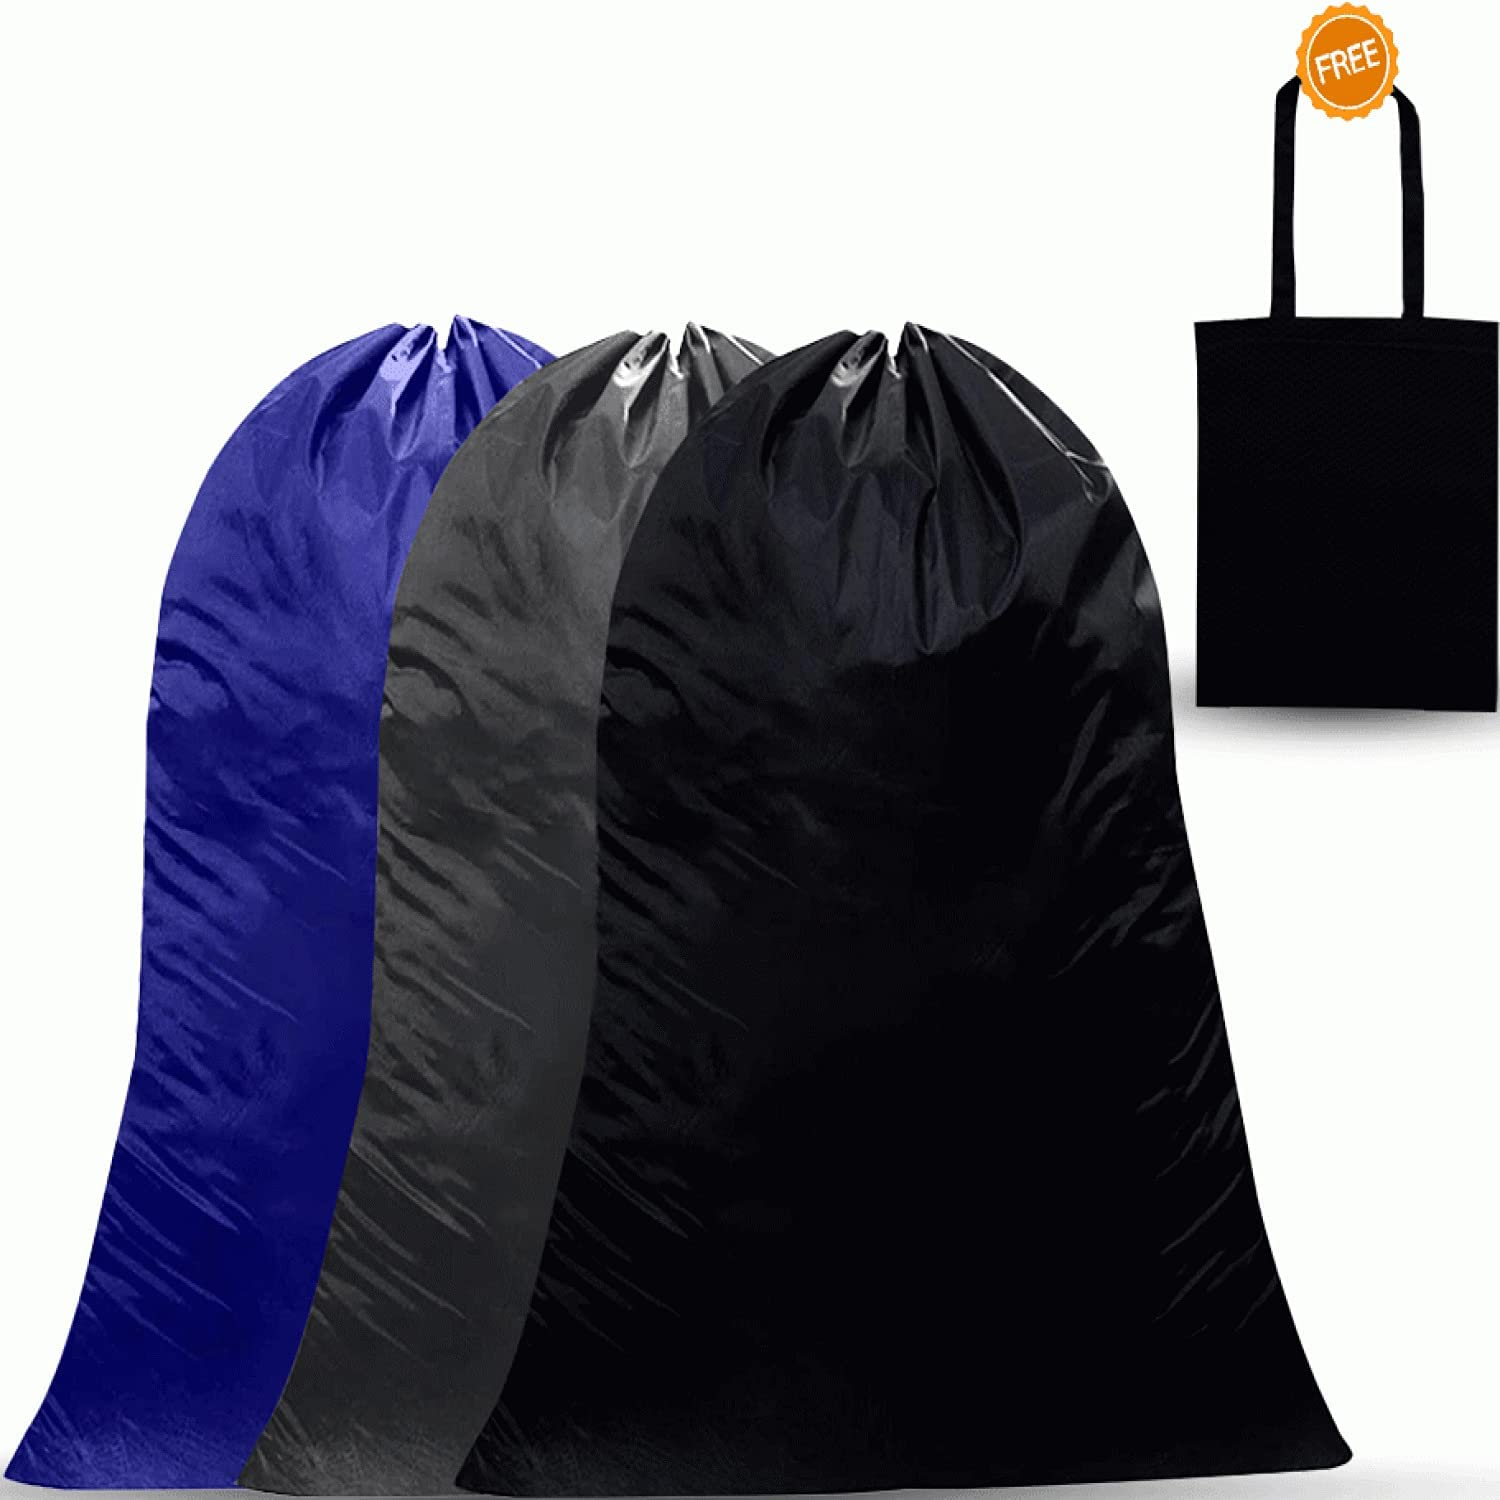 Dino74 3 Pack Heavy Duty Laundry Bags - Jumbo Traveling Dorm Room Bags Machine Washable Organizer for Storing Dirty Clothes With Free Reusable Grocery Bag